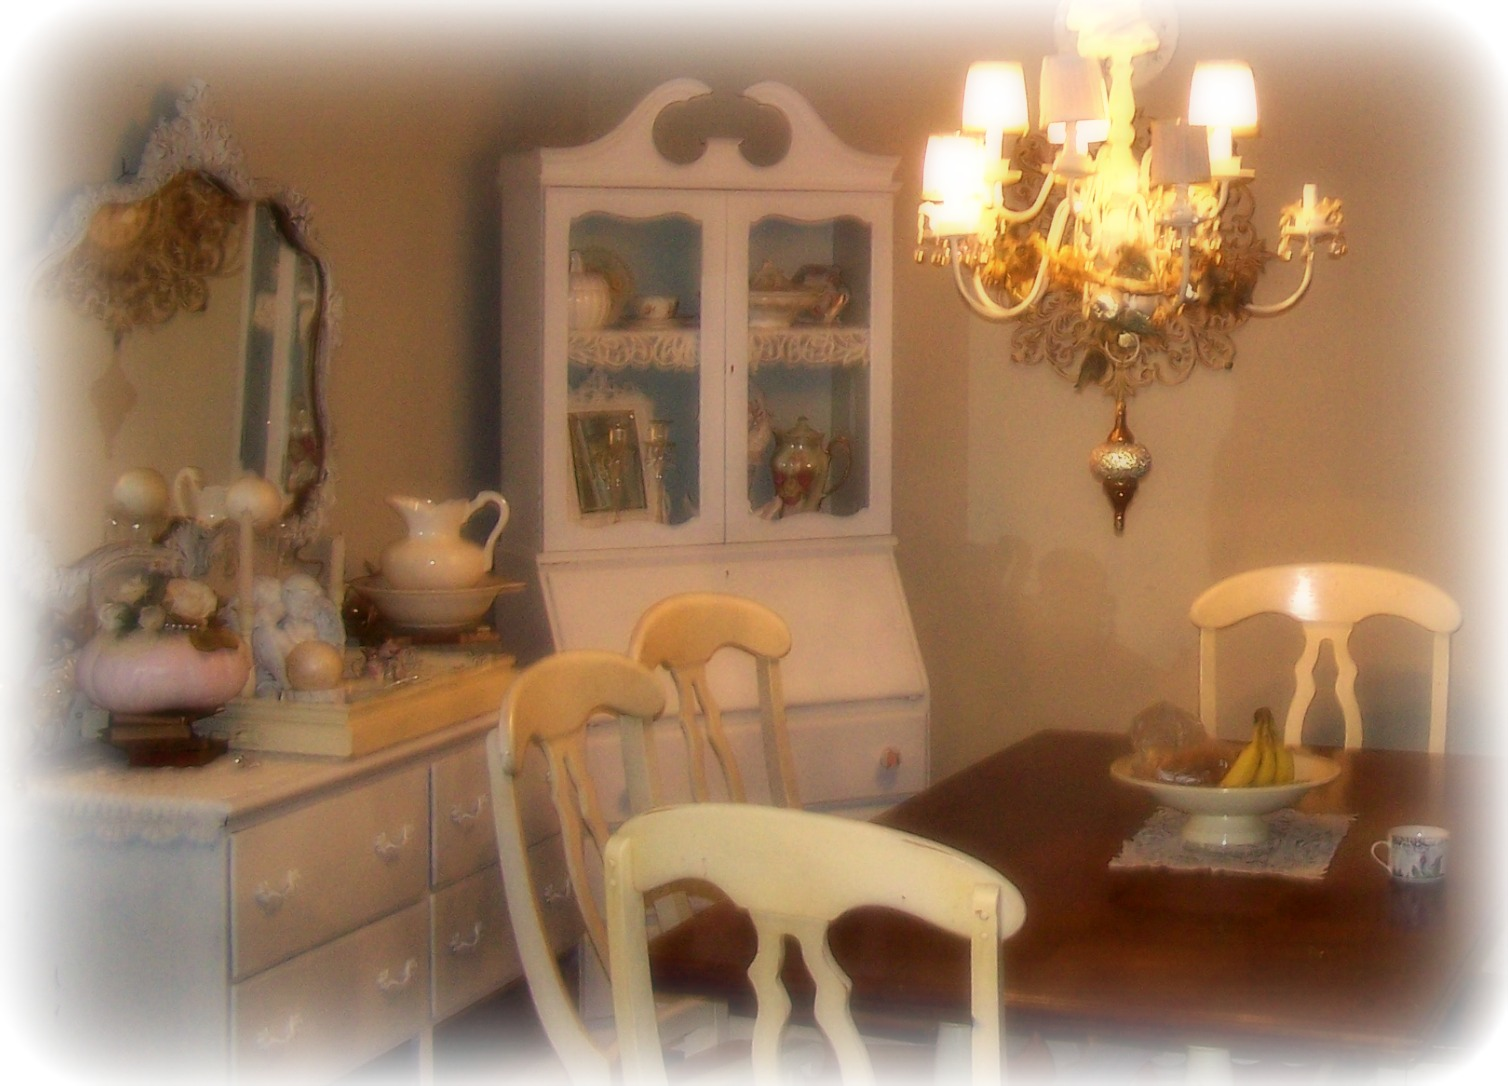 Olivia's Romantic Home: Shabby Chic Dresser Transformation!